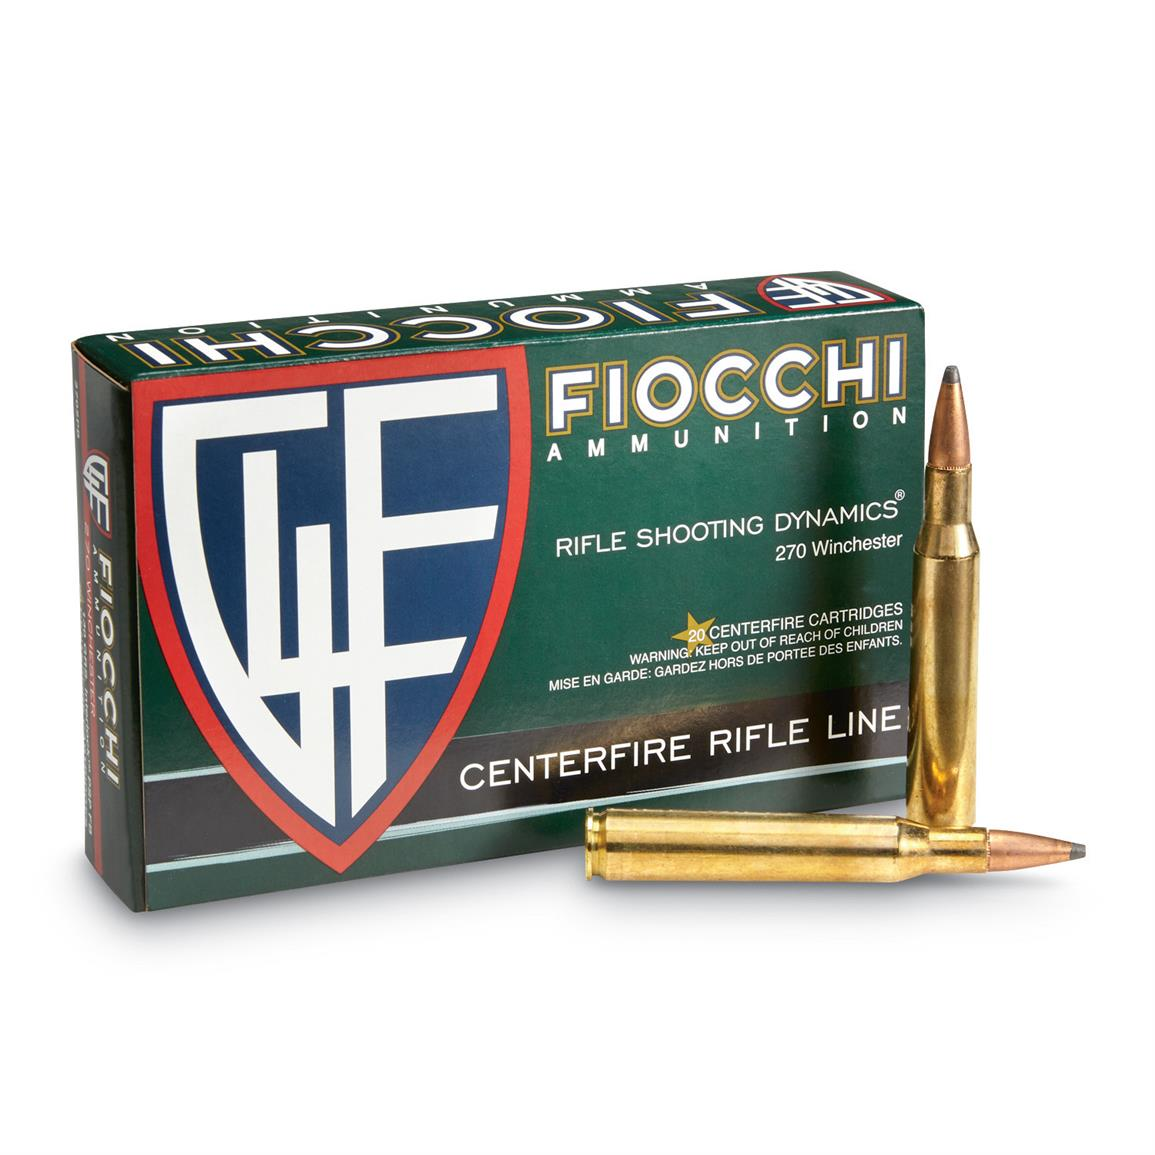 Fiocchi Rifle Shooting Dynamics, .270 Winchester, PSP, 130 Grain, 20 Rounds